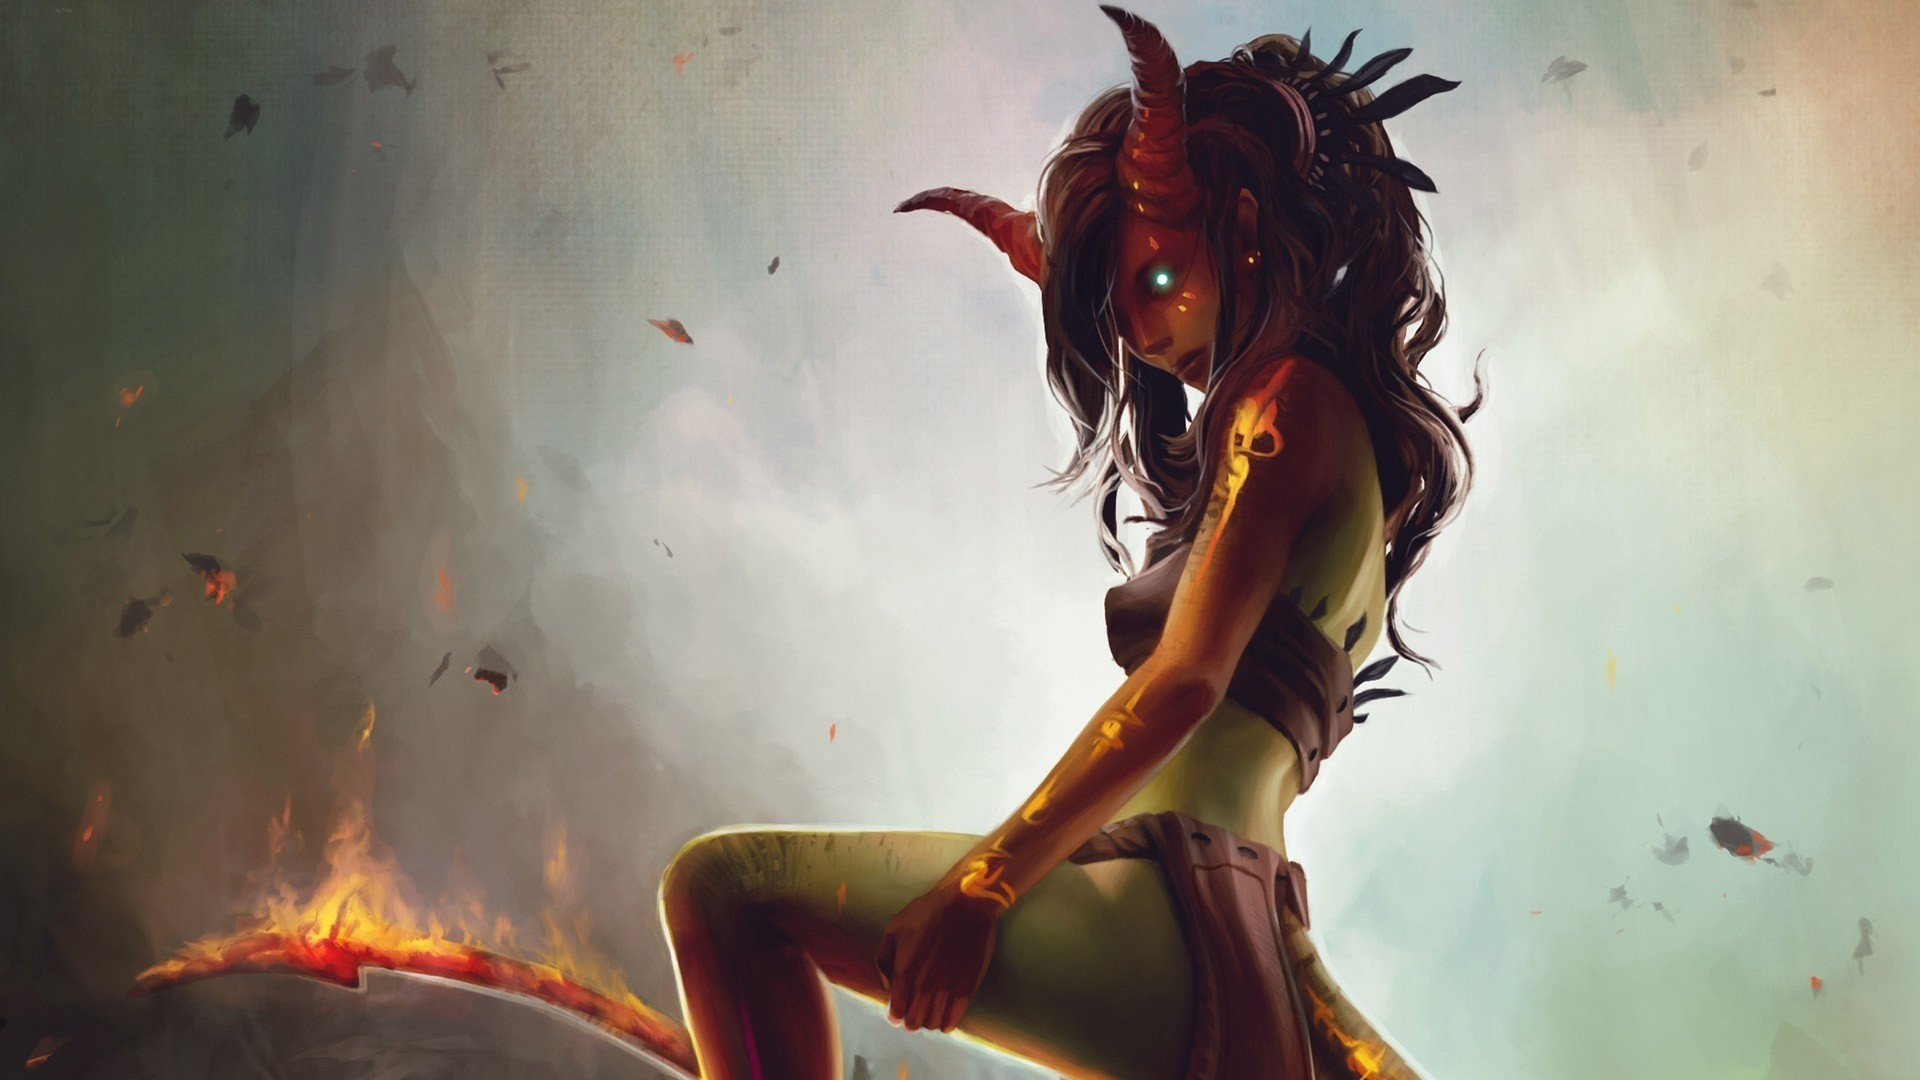 Res: 1920x1080,  - demon girl, horns, tattoo, fire, shiny eyes, creature #